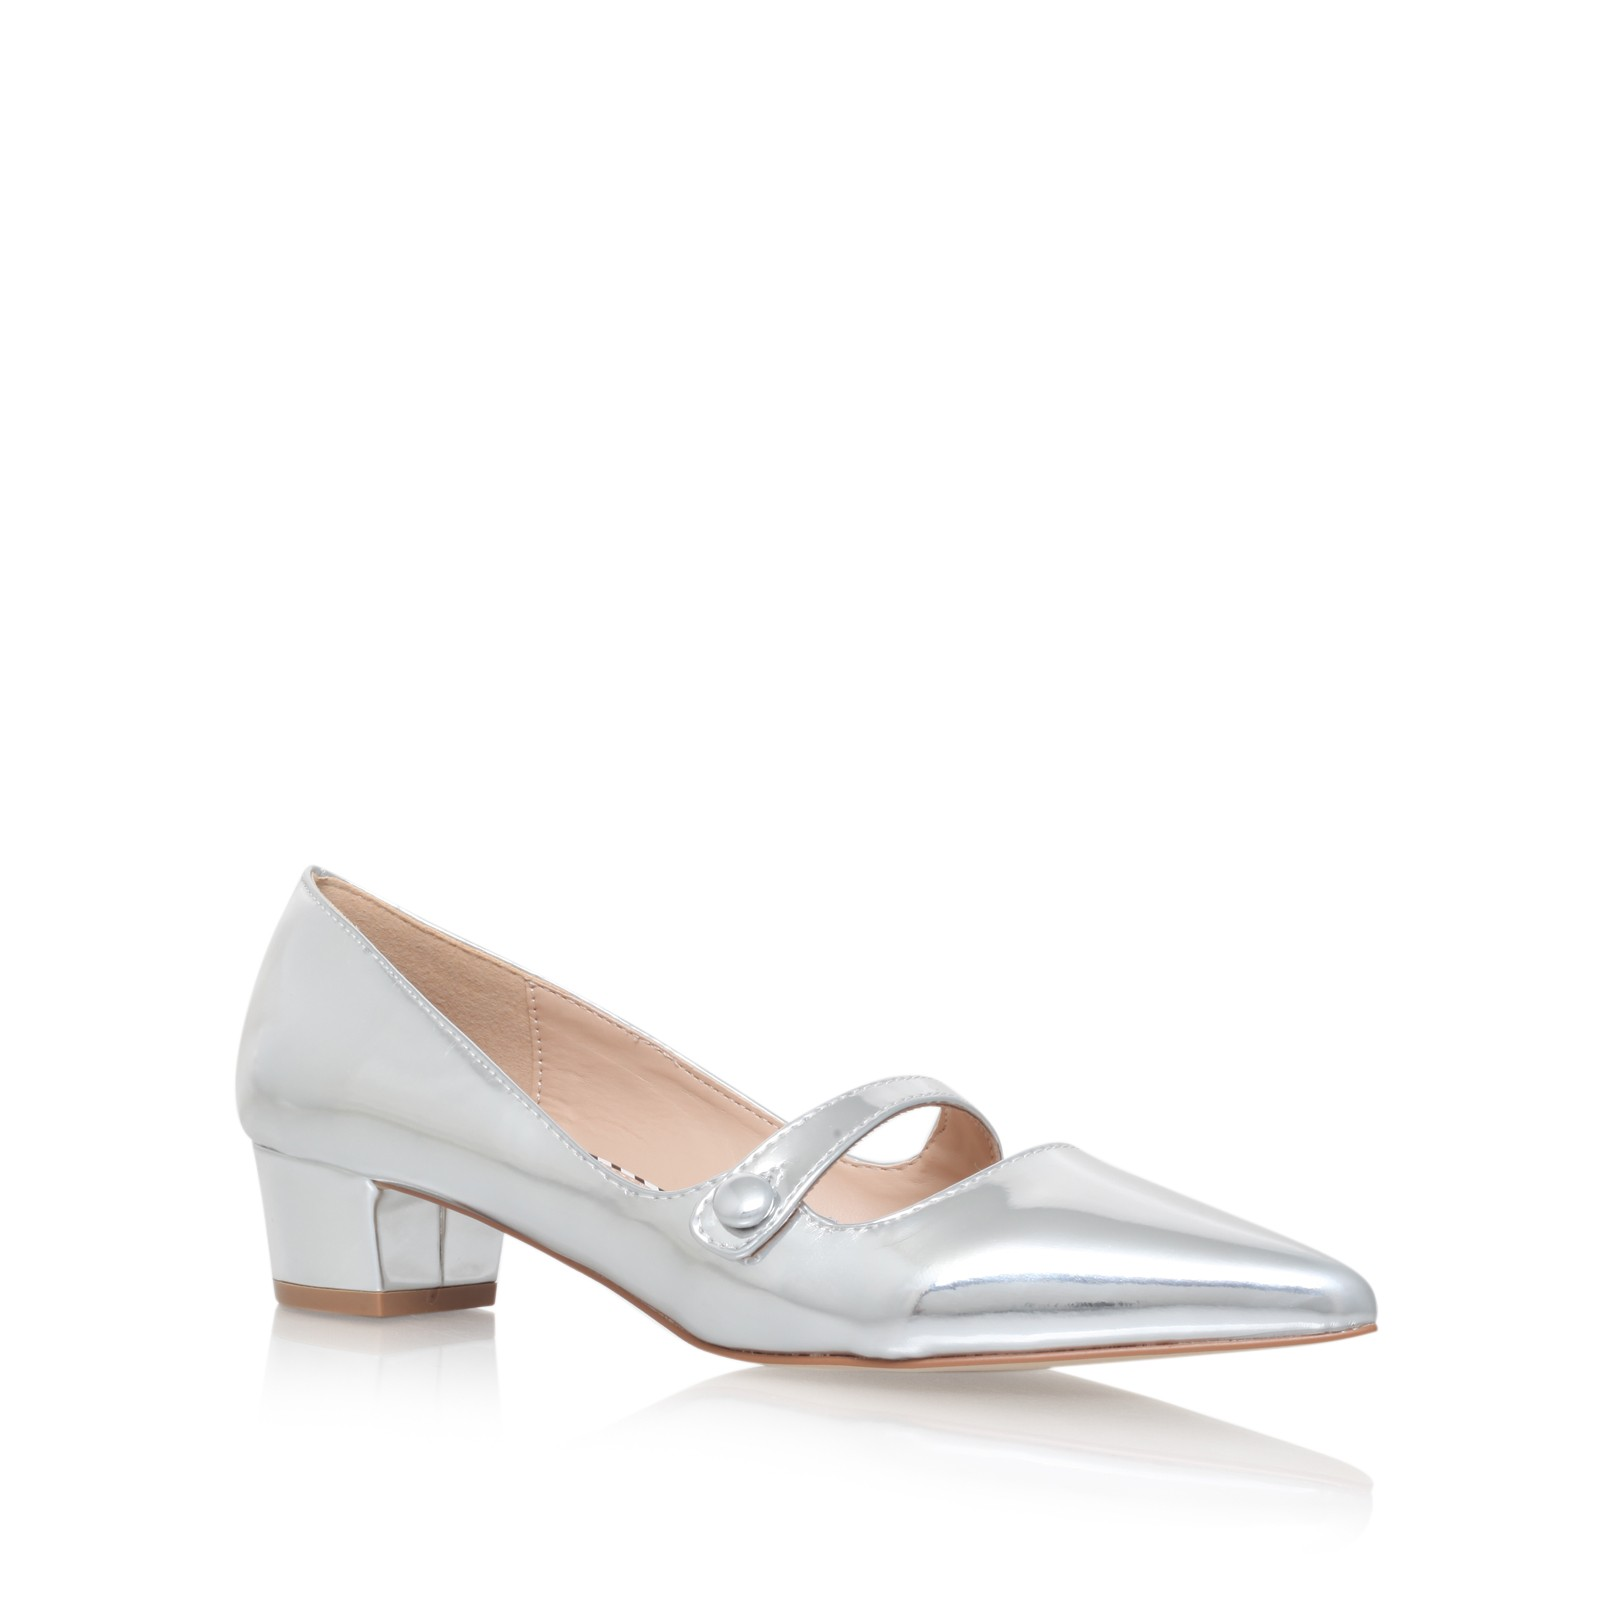 Silver Low Heel Court Shoes by Miss KG | Kurt Geiger